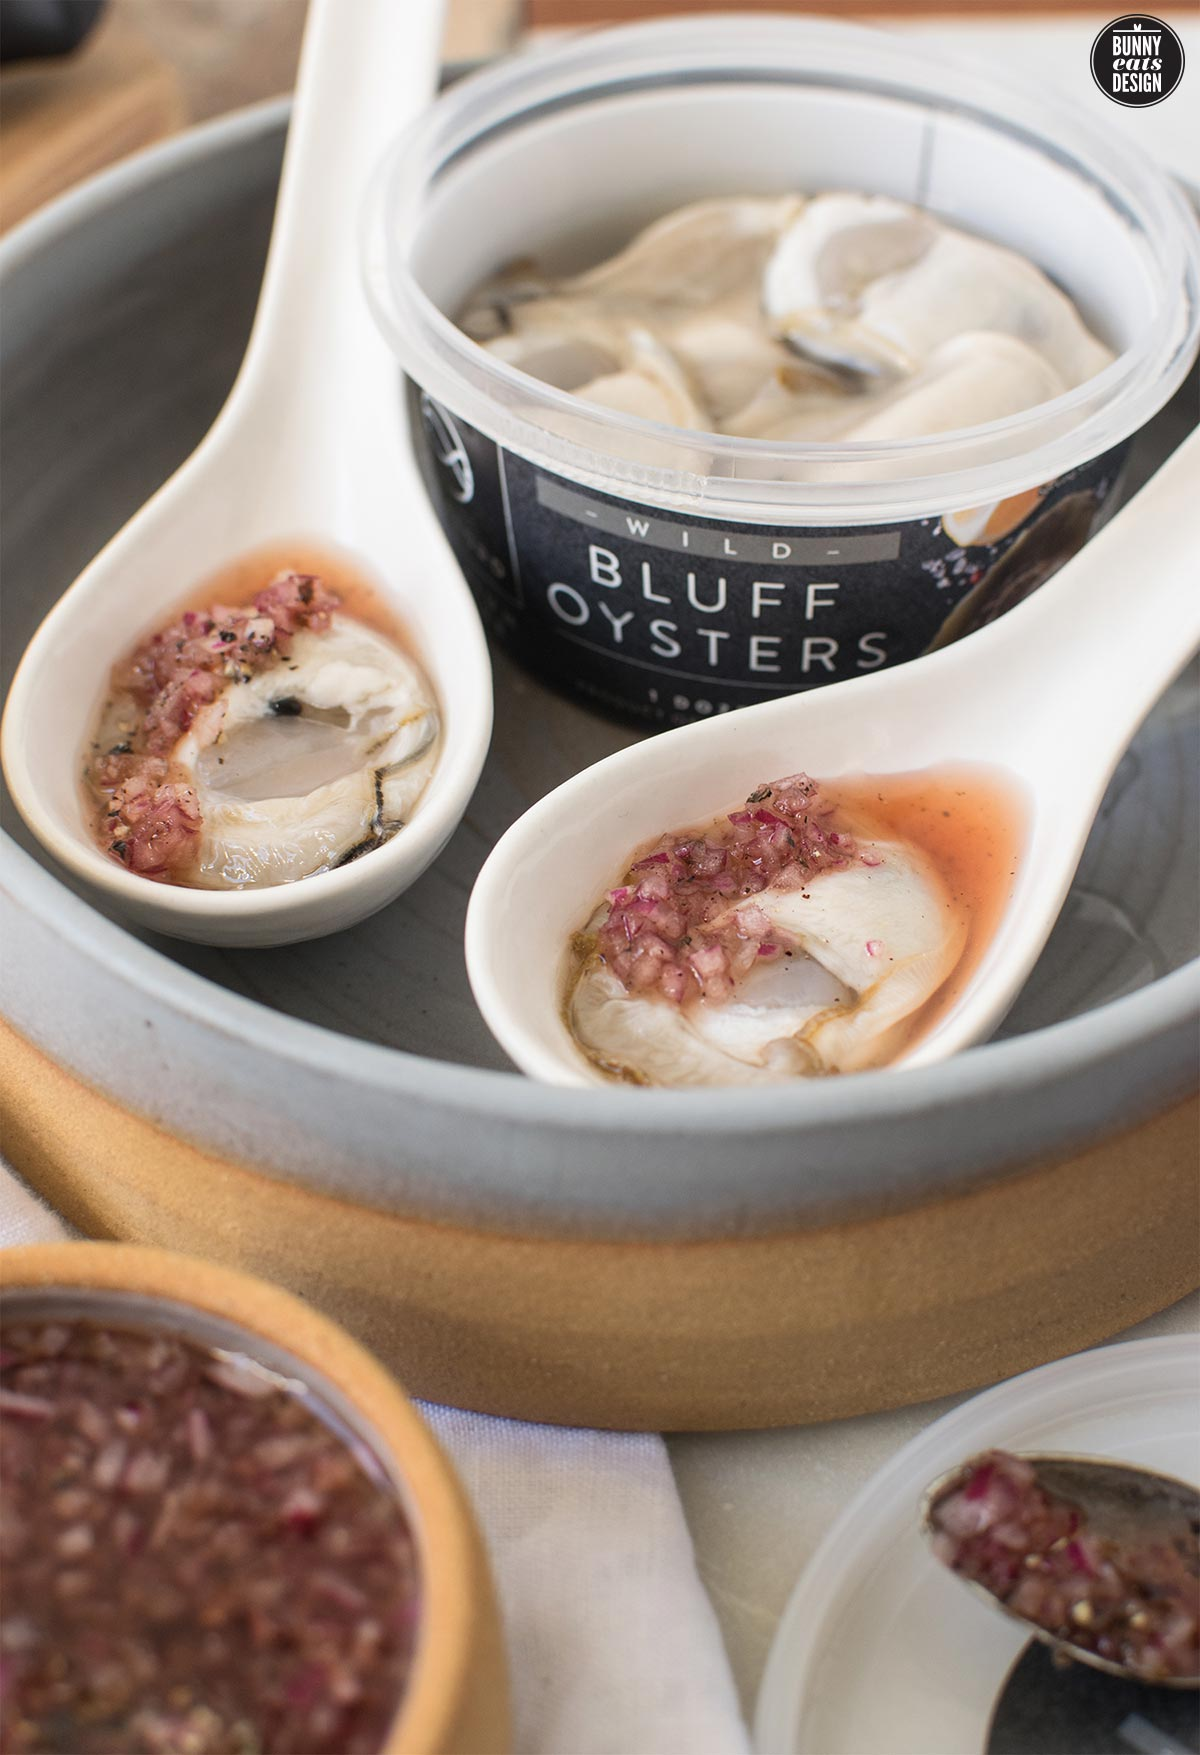 bluff-oysters-red-mignonette-007